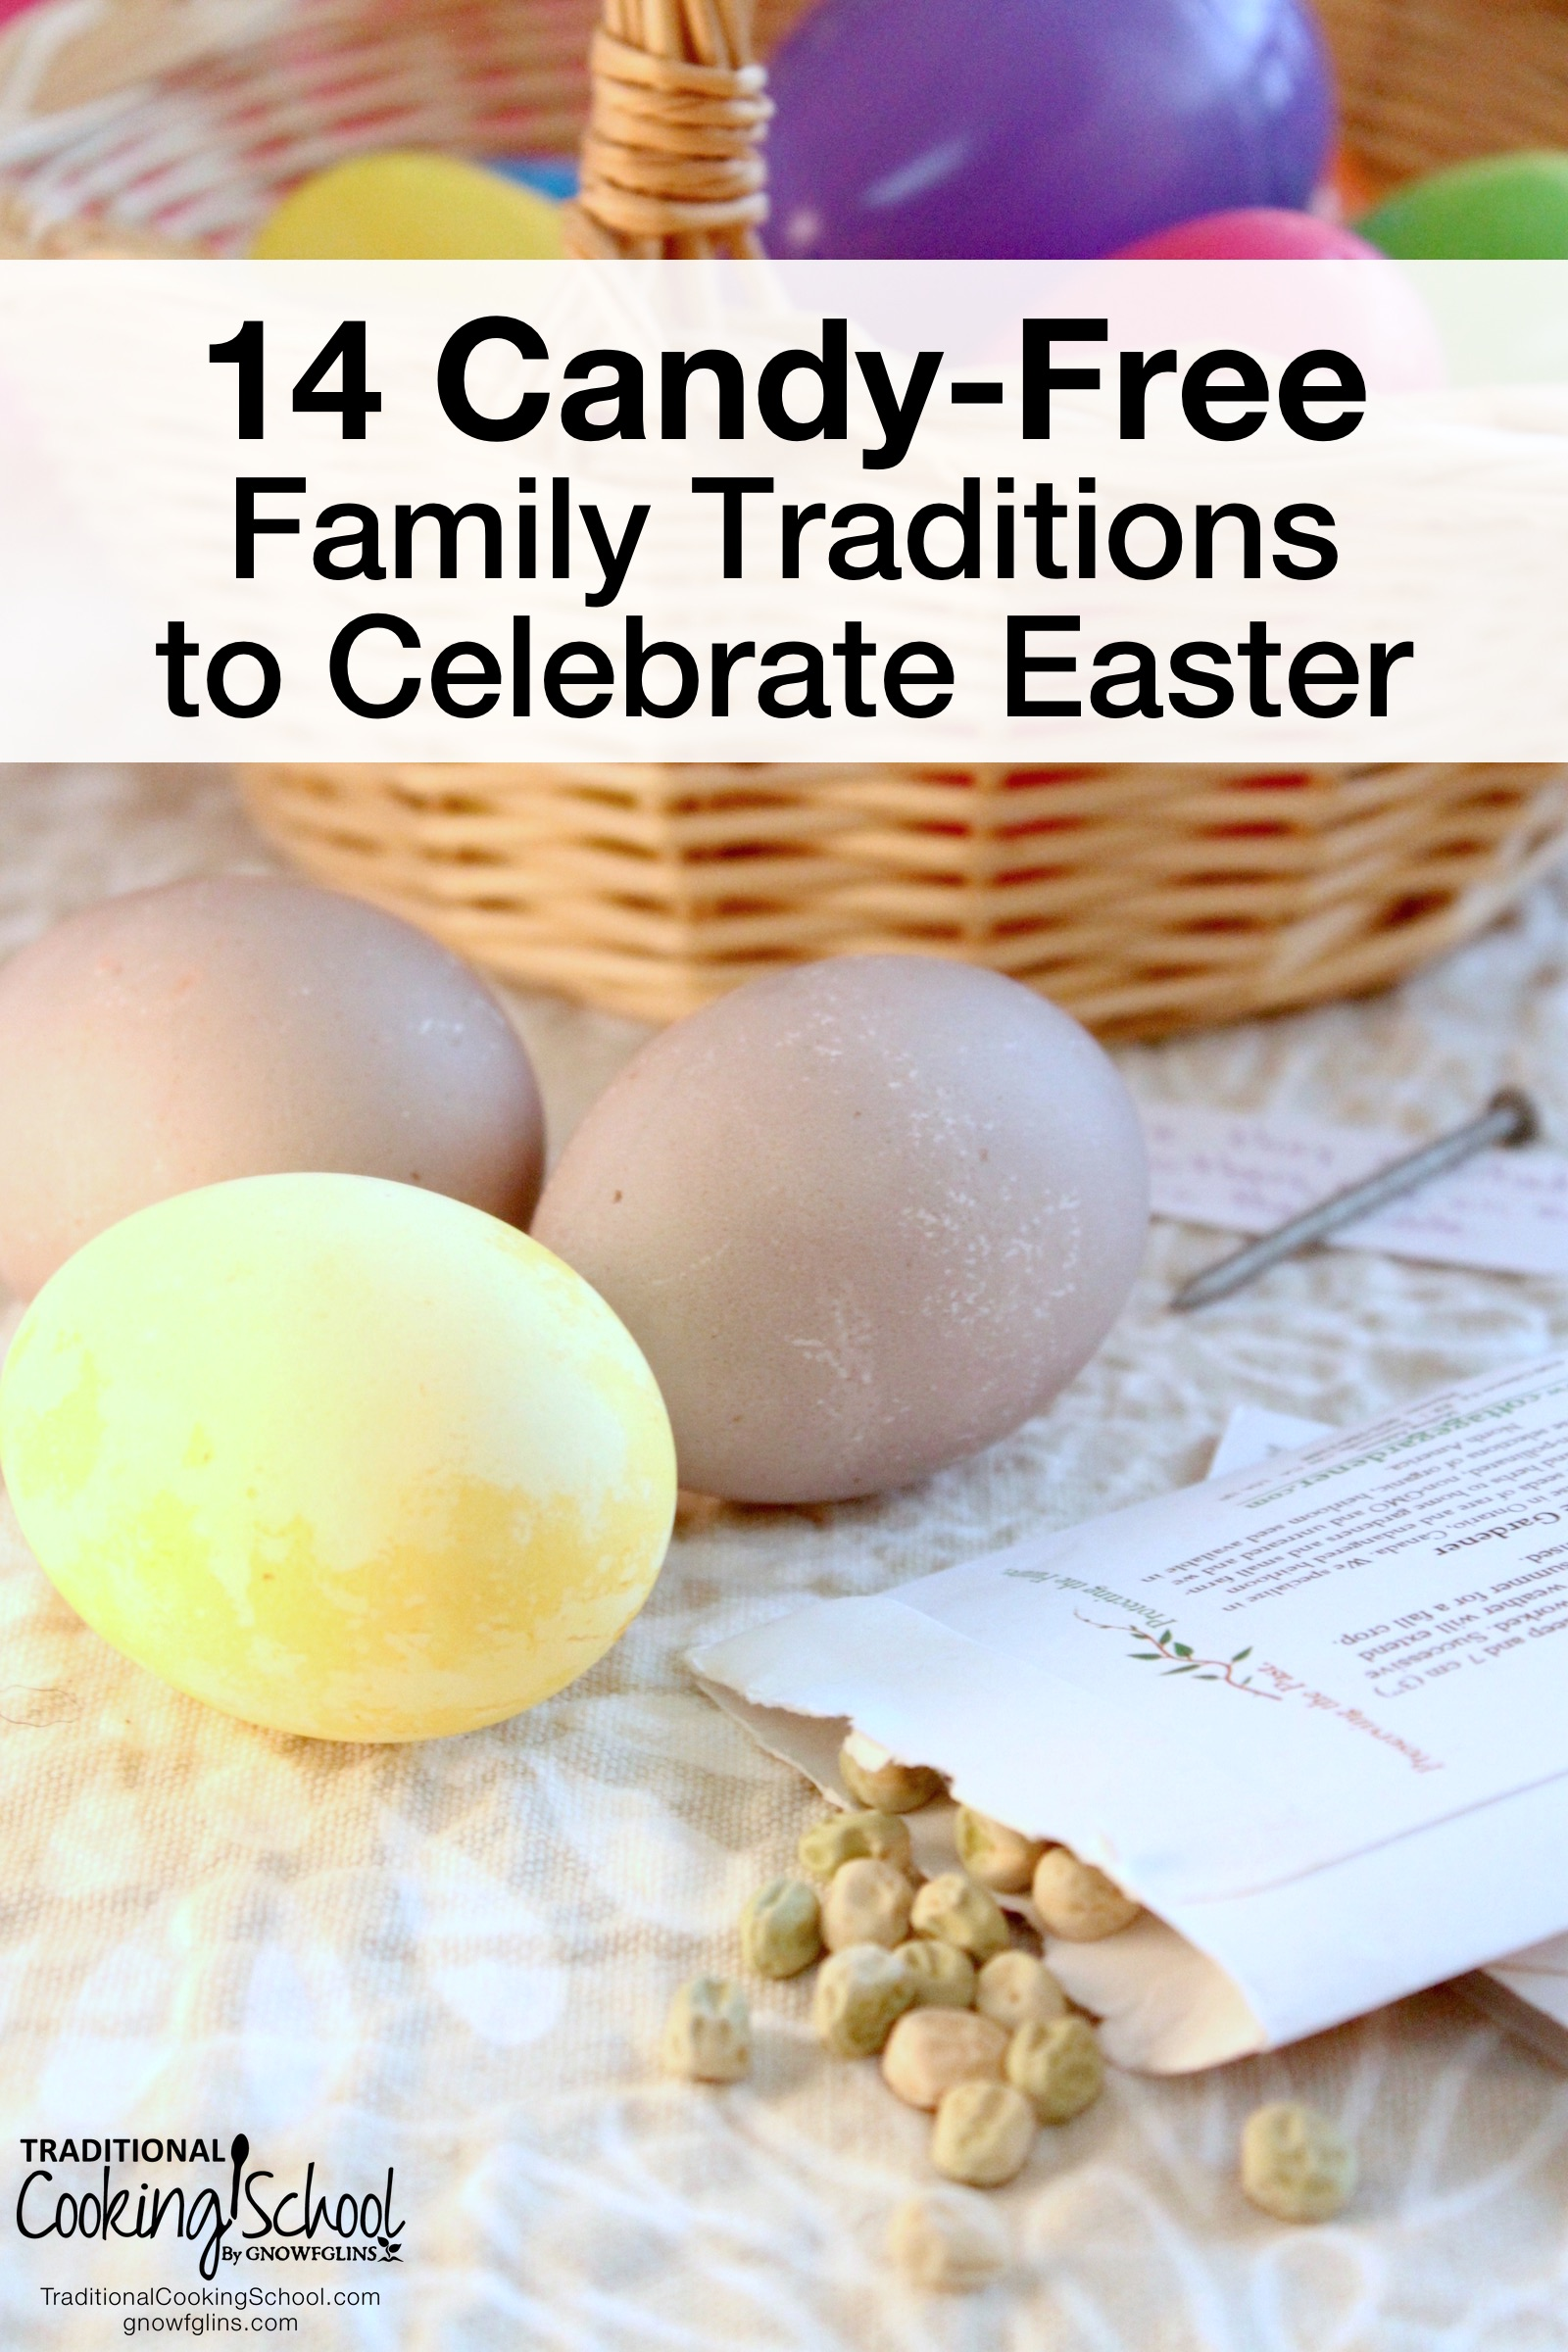 14 Candy-Free Family Traditions To Celebrate Easter | Why does it seem like every holiday revolves around candy? Halloween, Christmas, Valentine's Day, Easter... One holiday follows another, each with an onslaught of chocolate, candy, and sugary sweets. Yet, it doesn't have to be that way. Here are 14 family-friendly Easter traditions that don't center on chocolate, treats, or sweets. | TraditionalCookingSchool.com